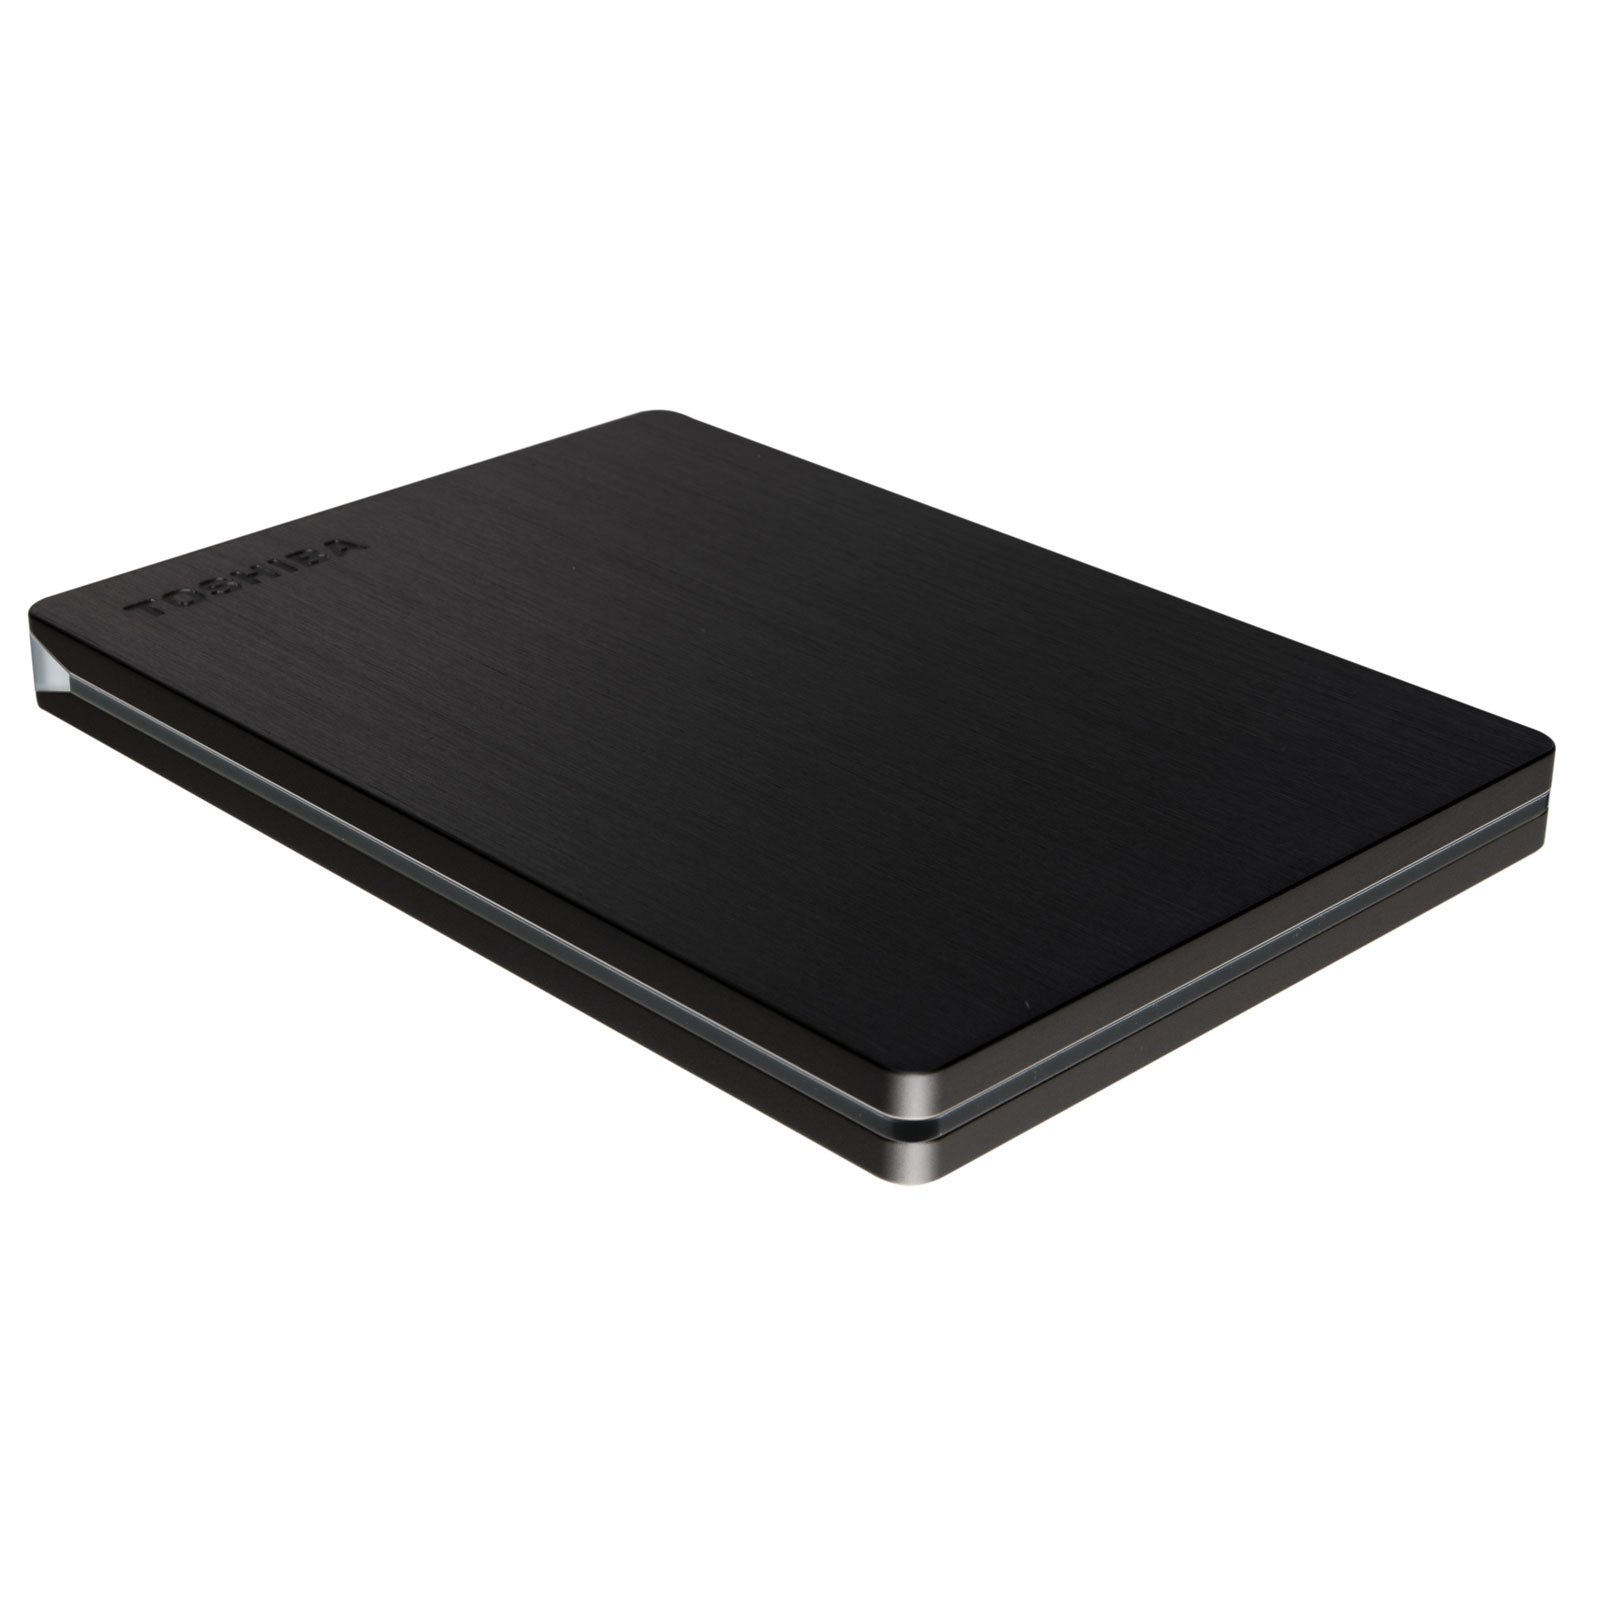 toshiba stor e slim 500 go noir disque dur externe toshiba sur ldlc. Black Bedroom Furniture Sets. Home Design Ideas